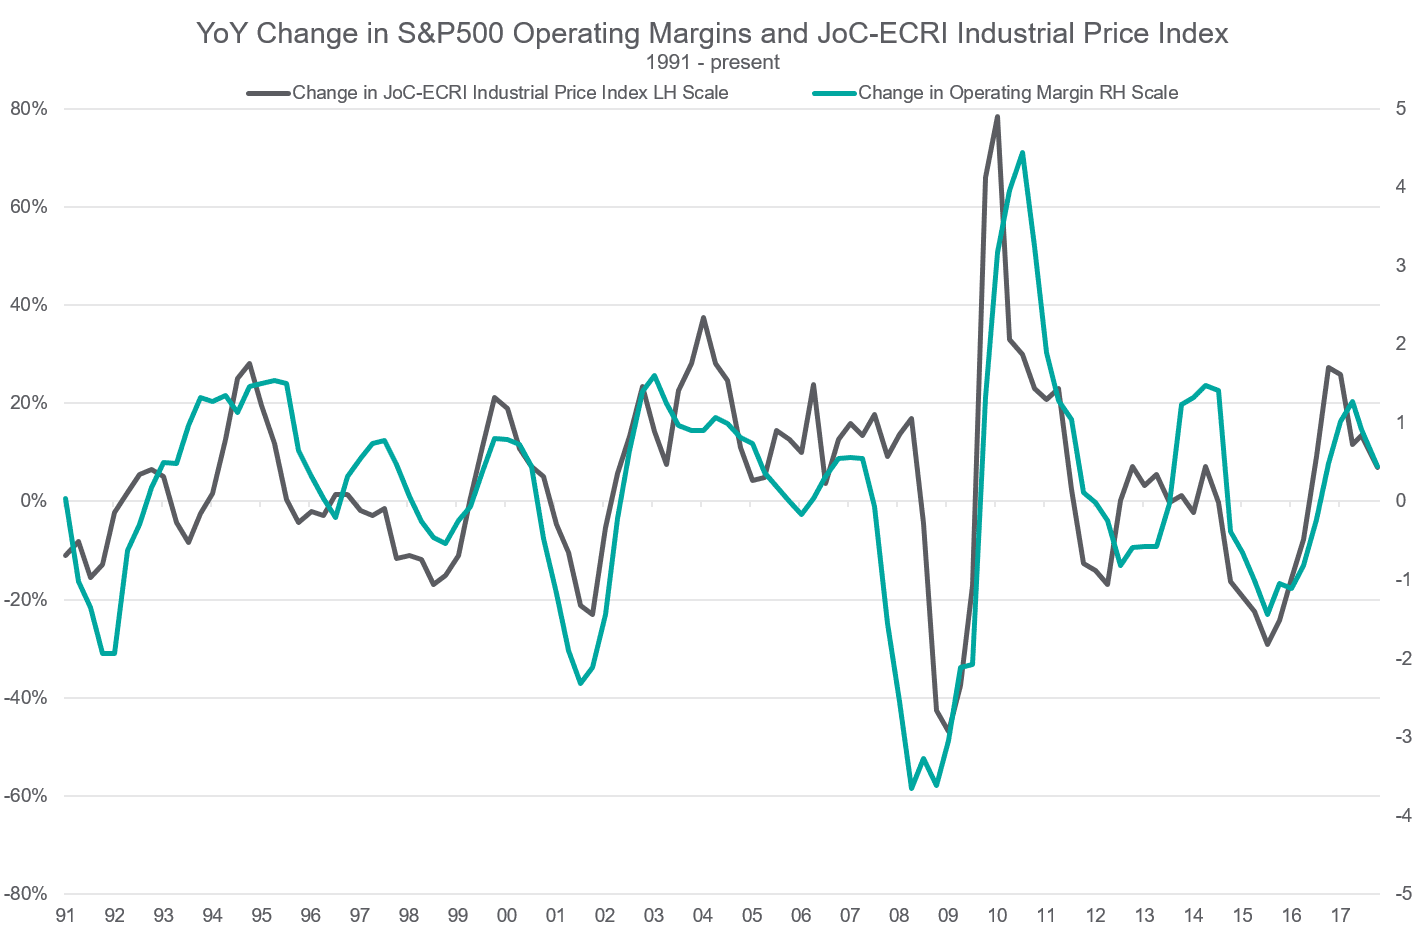 YoY Change in S&P500 Operating Margins & JoC-ECRI IPI